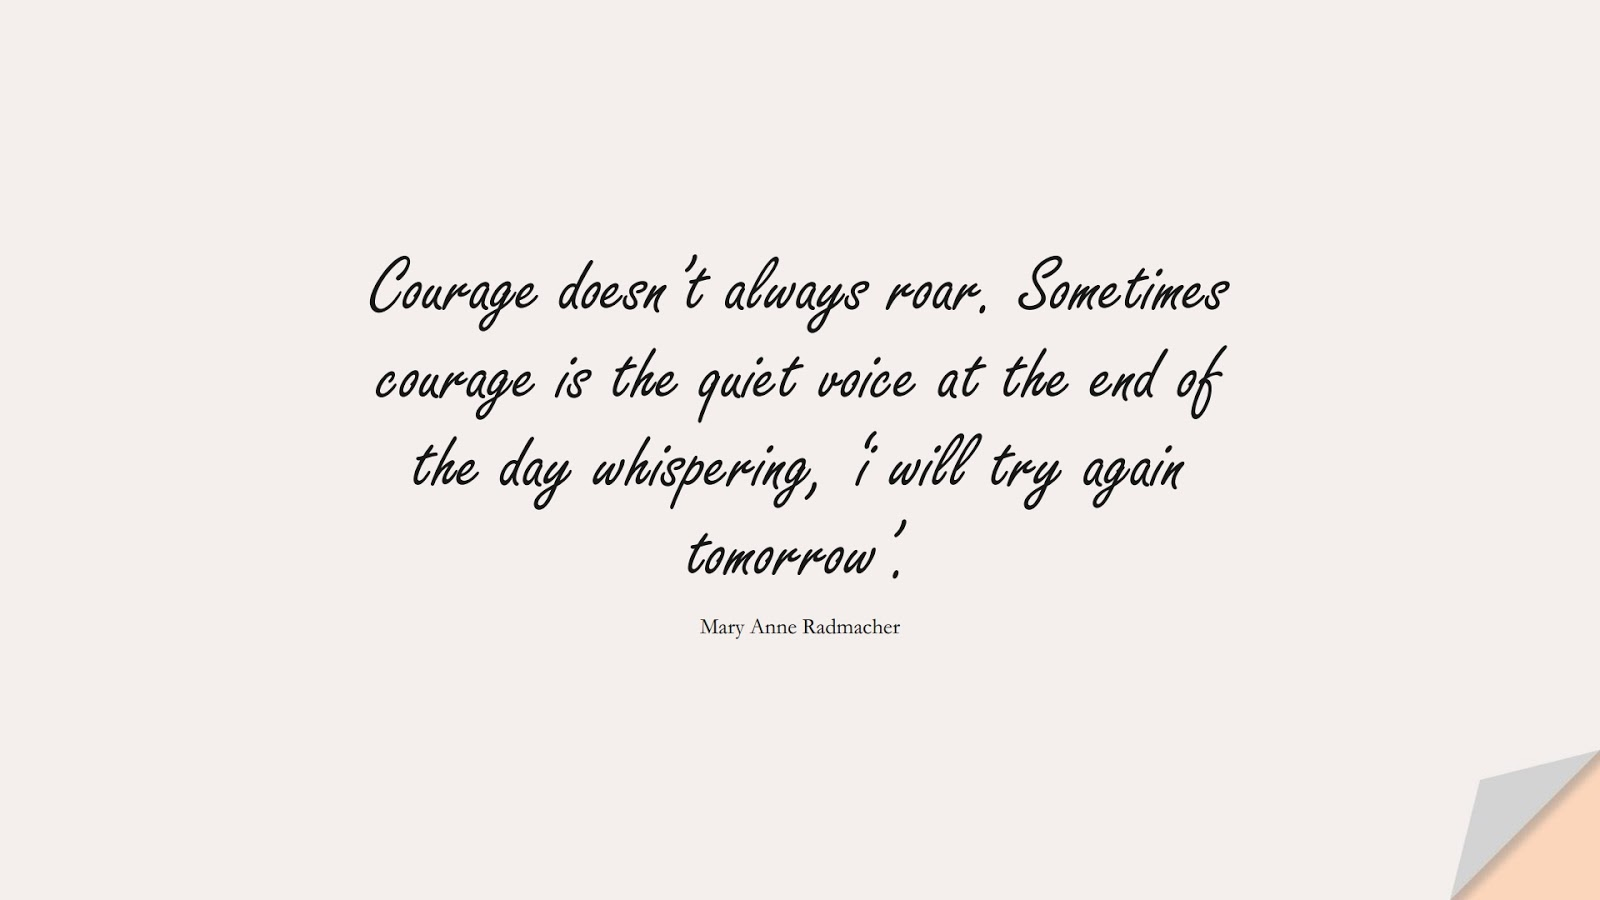 Courage doesn't always roar. Sometimes courage is the quiet voice at the end of the day whispering, 'i will try again tomorrow'. (Mary Anne Radmacher);  #CourageQuotes